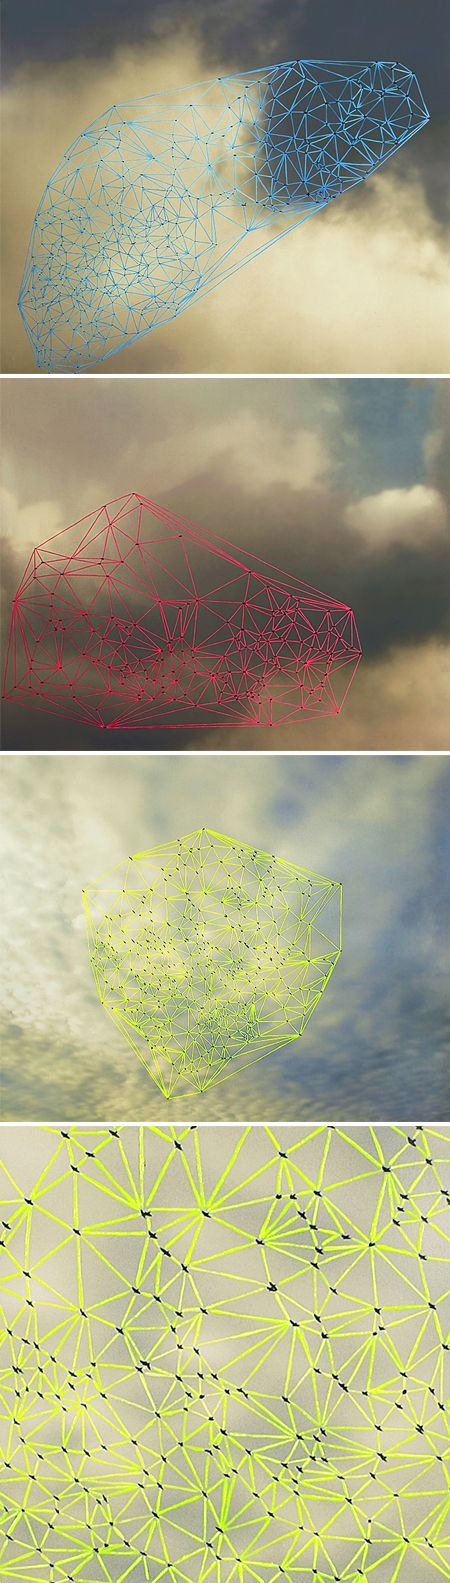 catherine ulitsky: Geometric Patterns, Massiv Geometric, Geometric Object, Geometric Shapes, Tiny Birds, Connection The Dots, Create Massiv, Catherine Ulitski, Birds In Flight